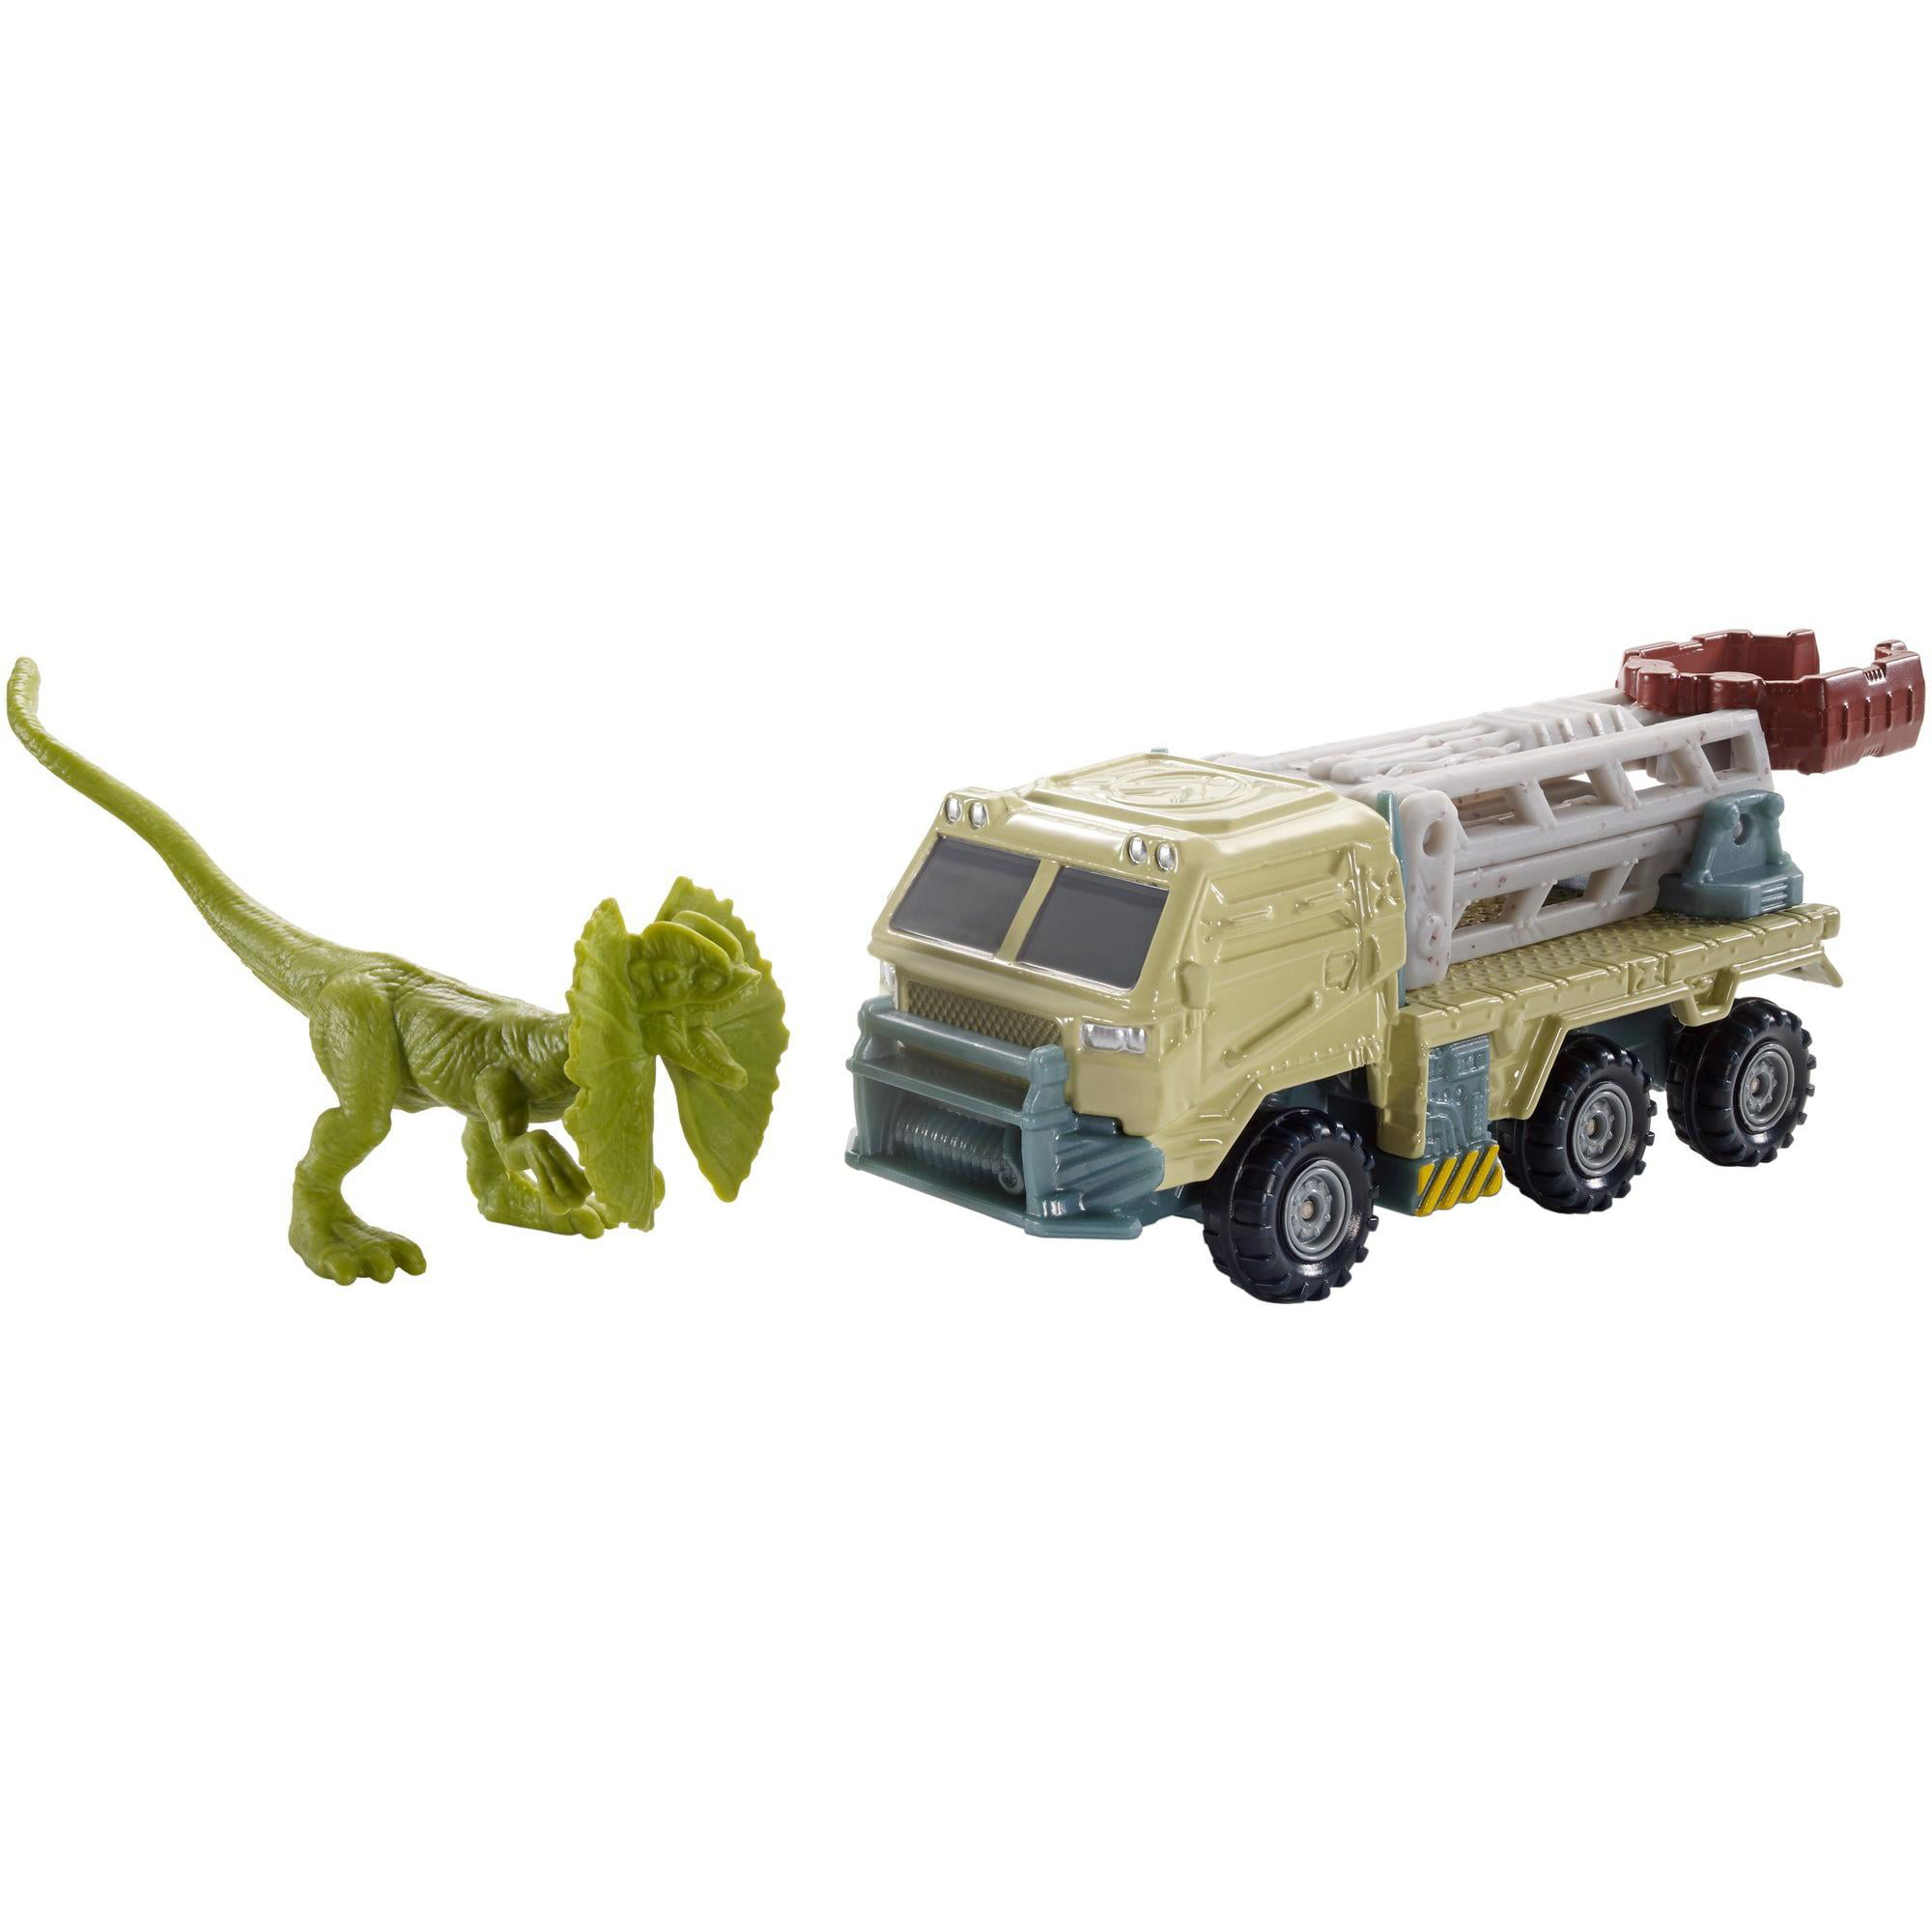 Matchbox Jurassic World Dino Transporters Dilopho-loader Vehicle and Figure by Mattel